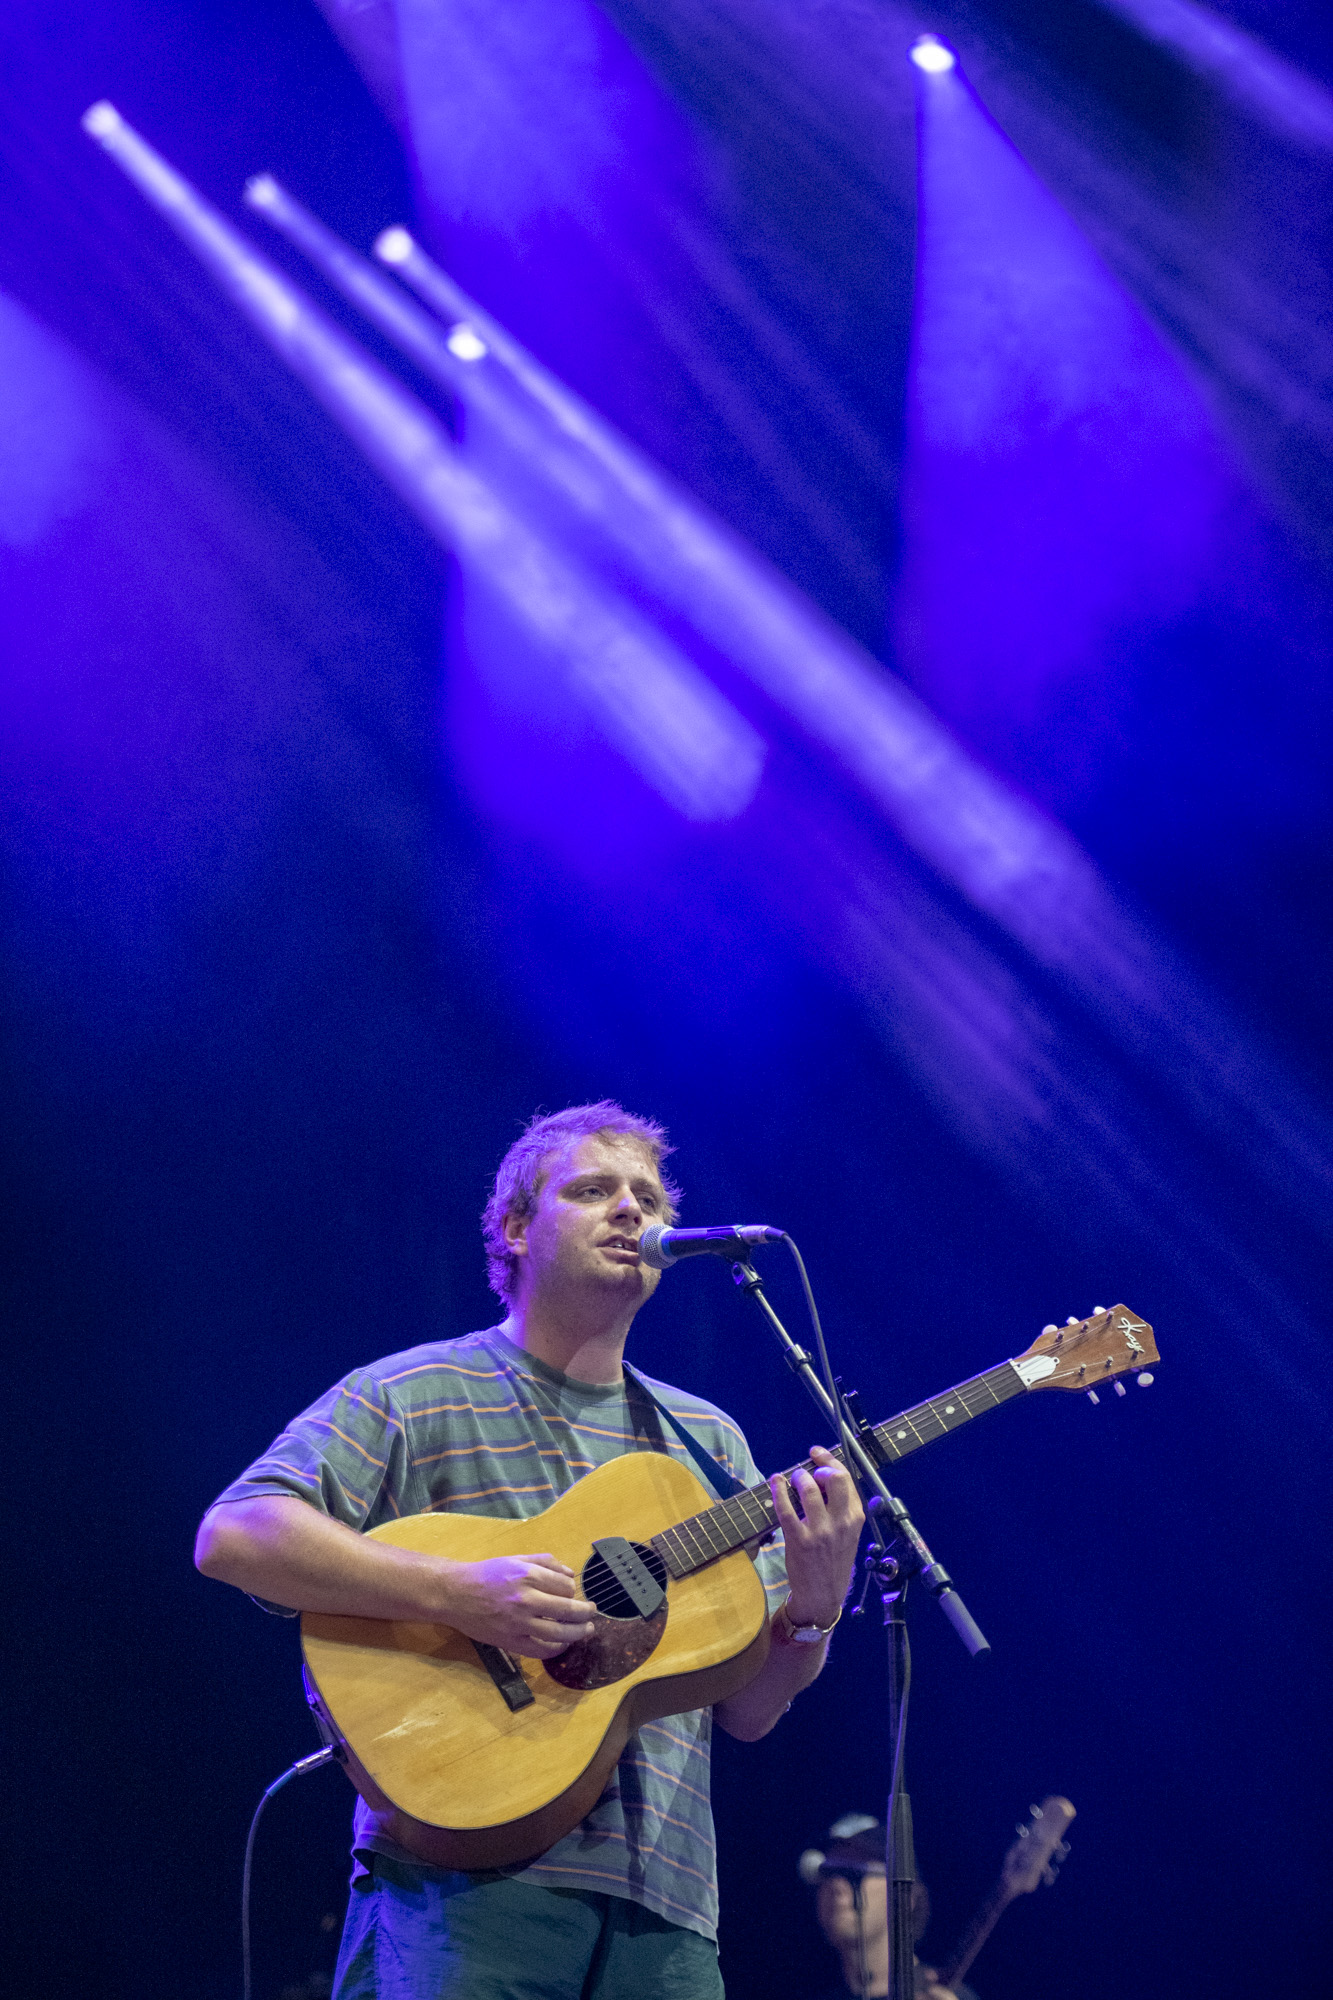 Mac DeMarco @ Rock Werchter 2019 (Nick De Baerdemaeker)